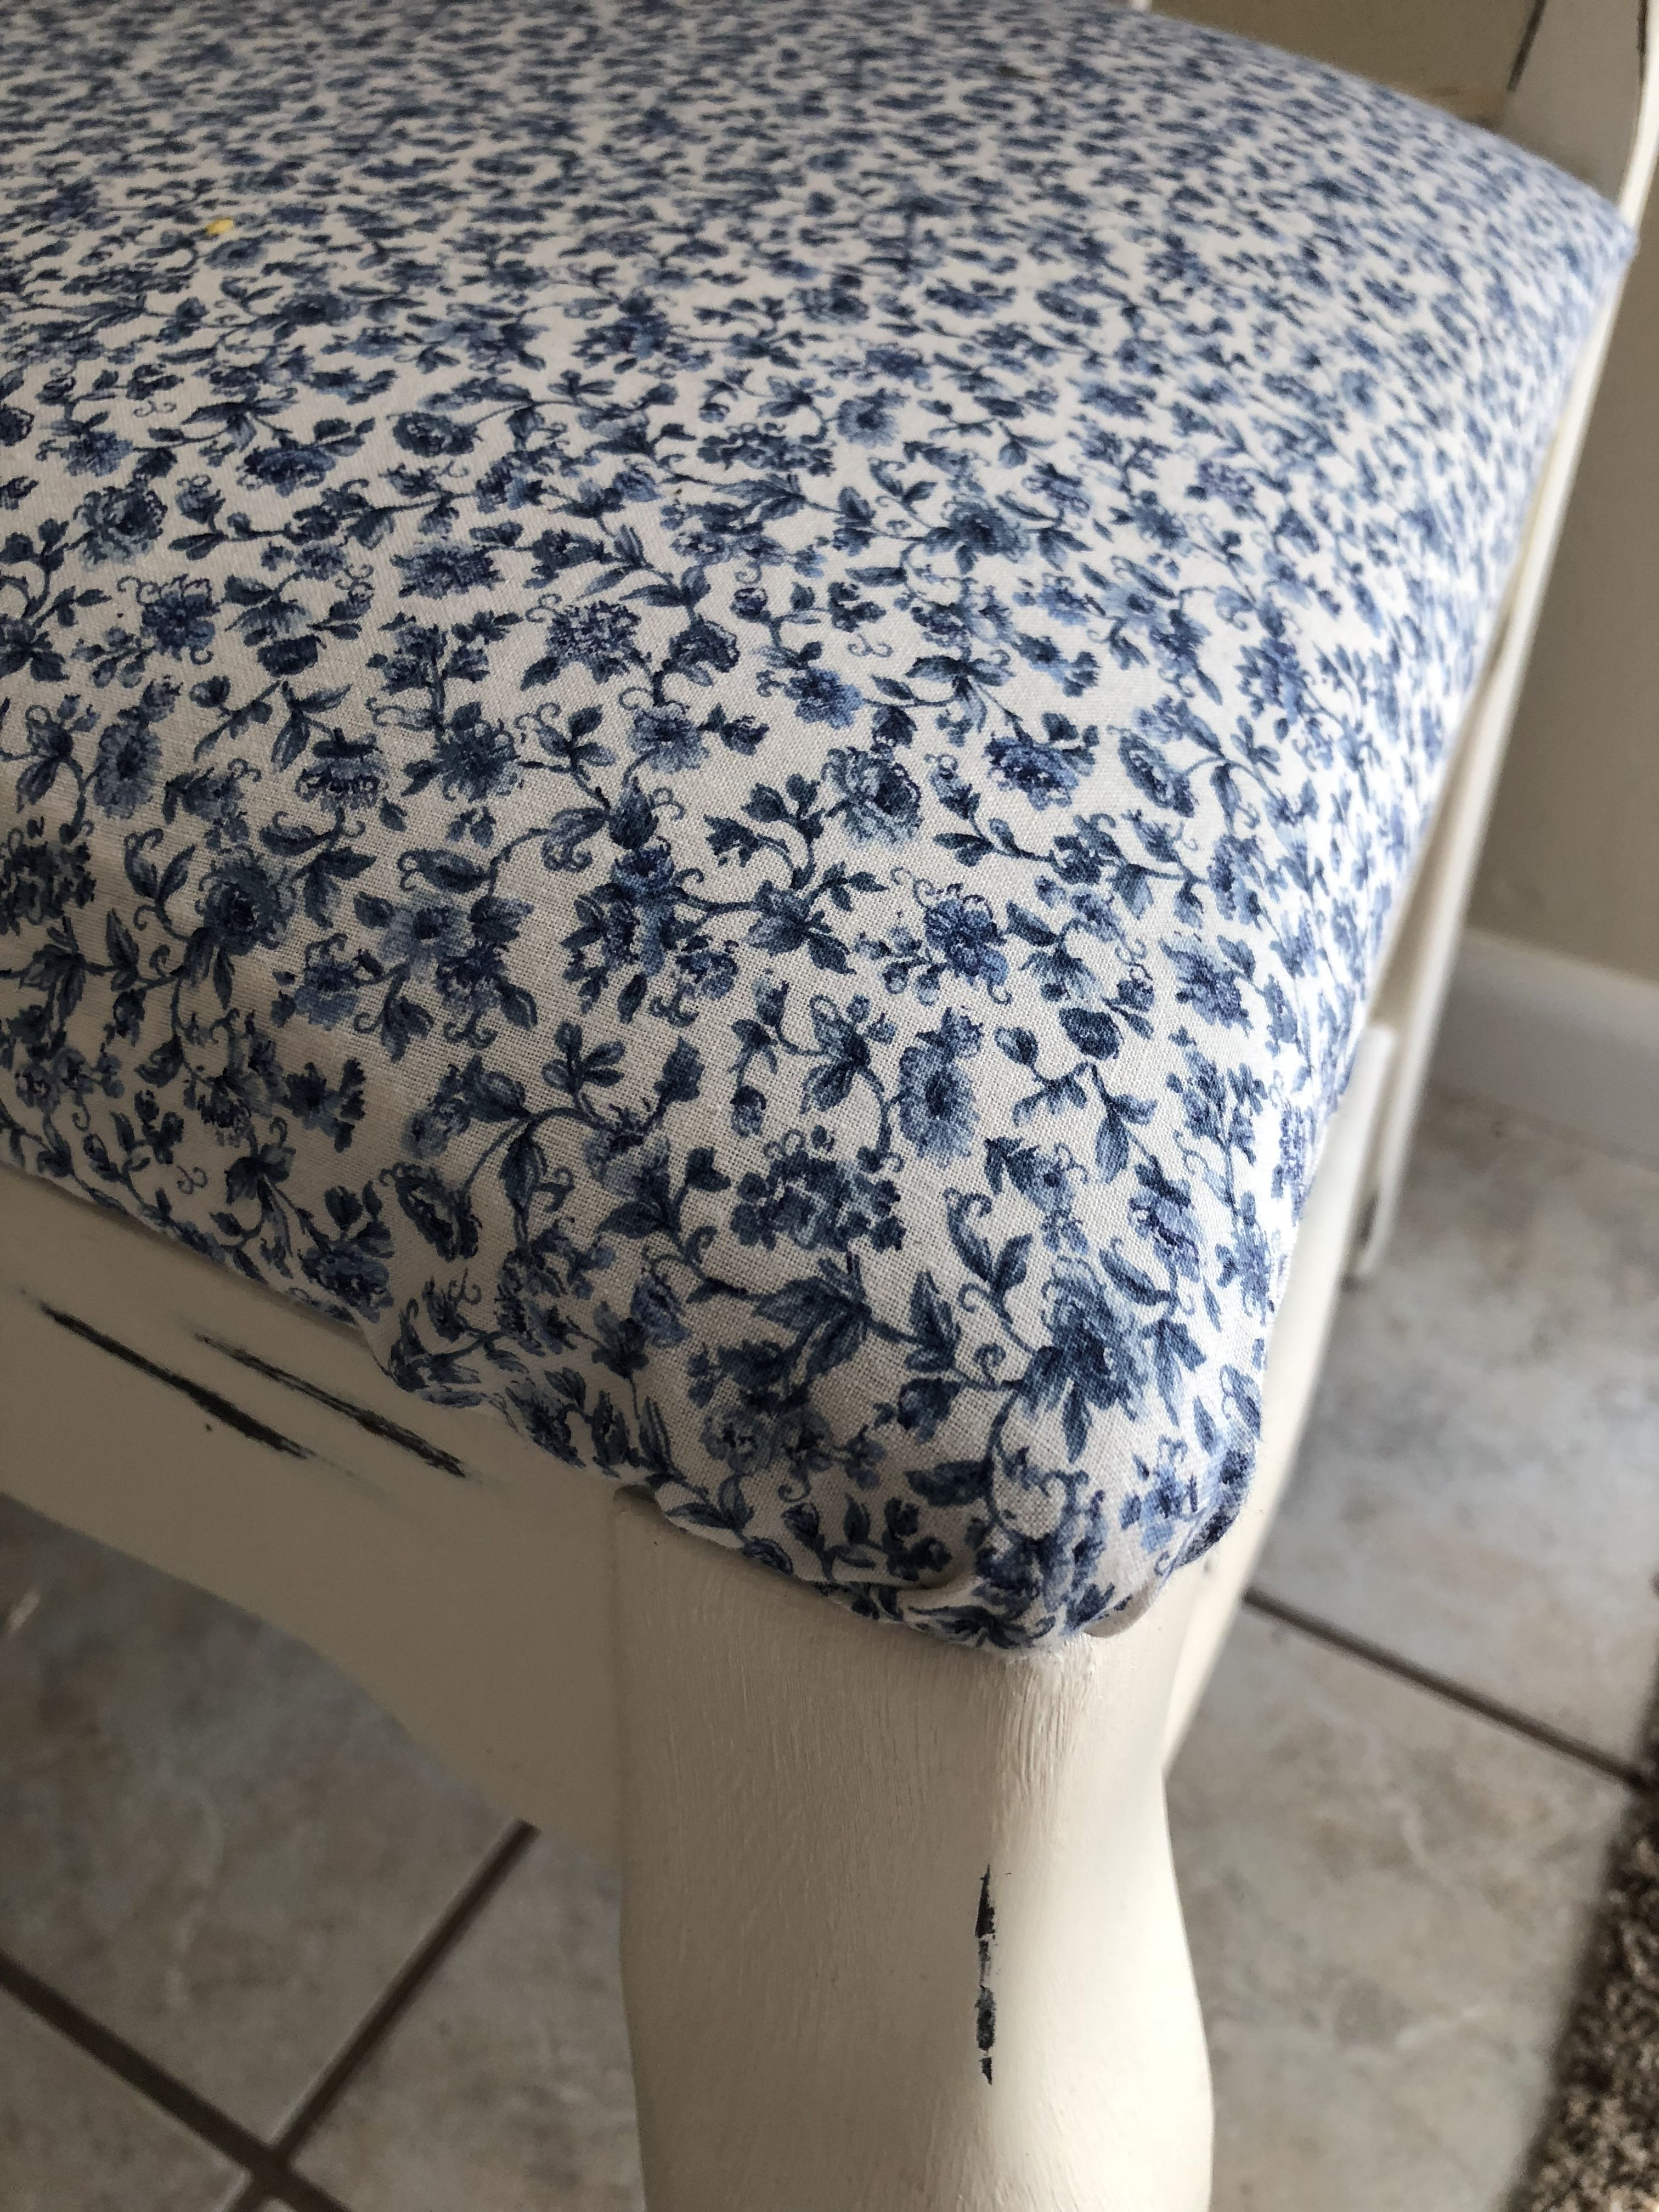 Upholstery Is My Favorite Part Refurbished Furniture Decor Upholstery